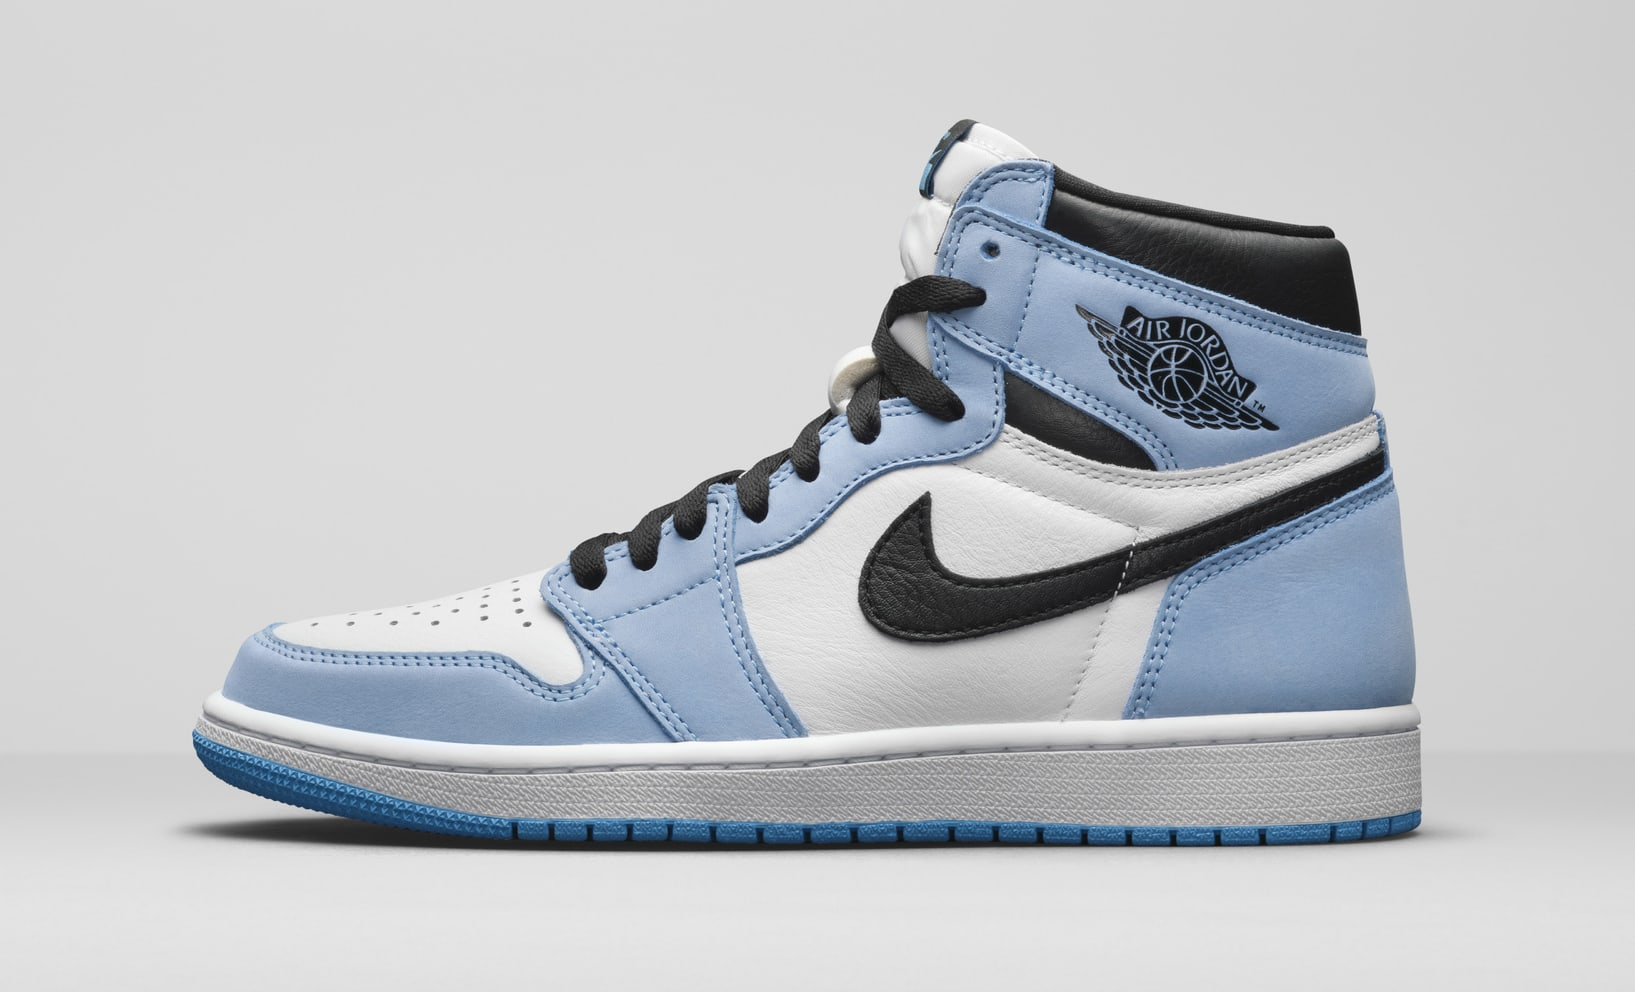 Air Jordan 1 Retro High OG 'UNC' 555088-134 Lateral